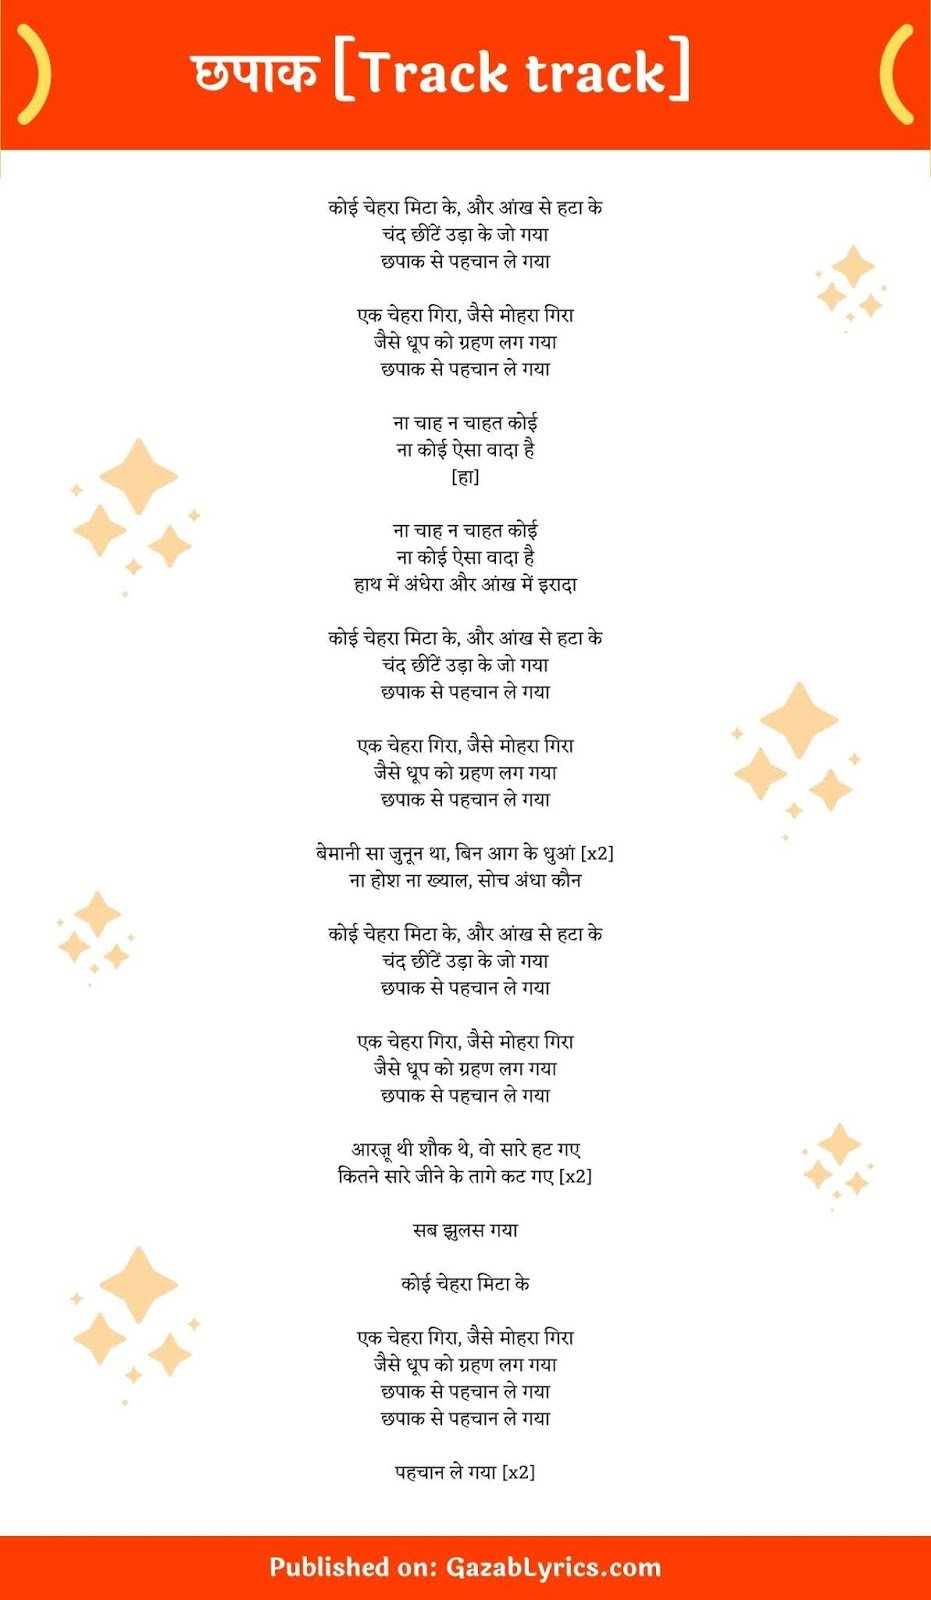 Chhapaak title track song lyrics image